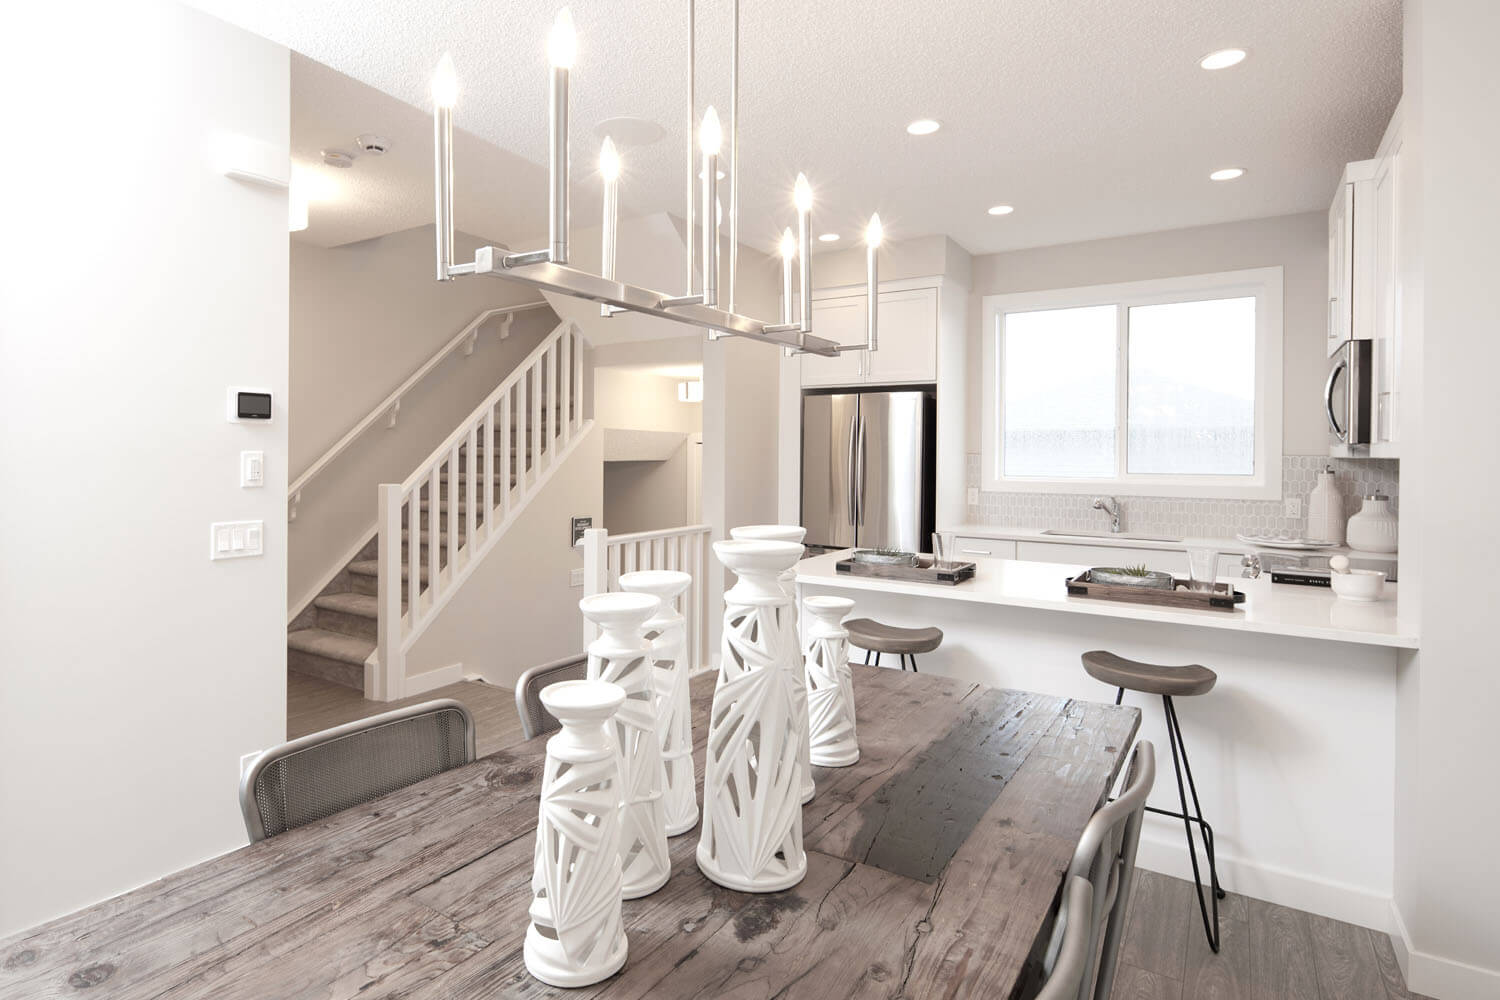 New Calgary  Model Home Sage in Cornerbrook, located at 20 Cornerbrook Way NE Built By Cardel Homes Calgary